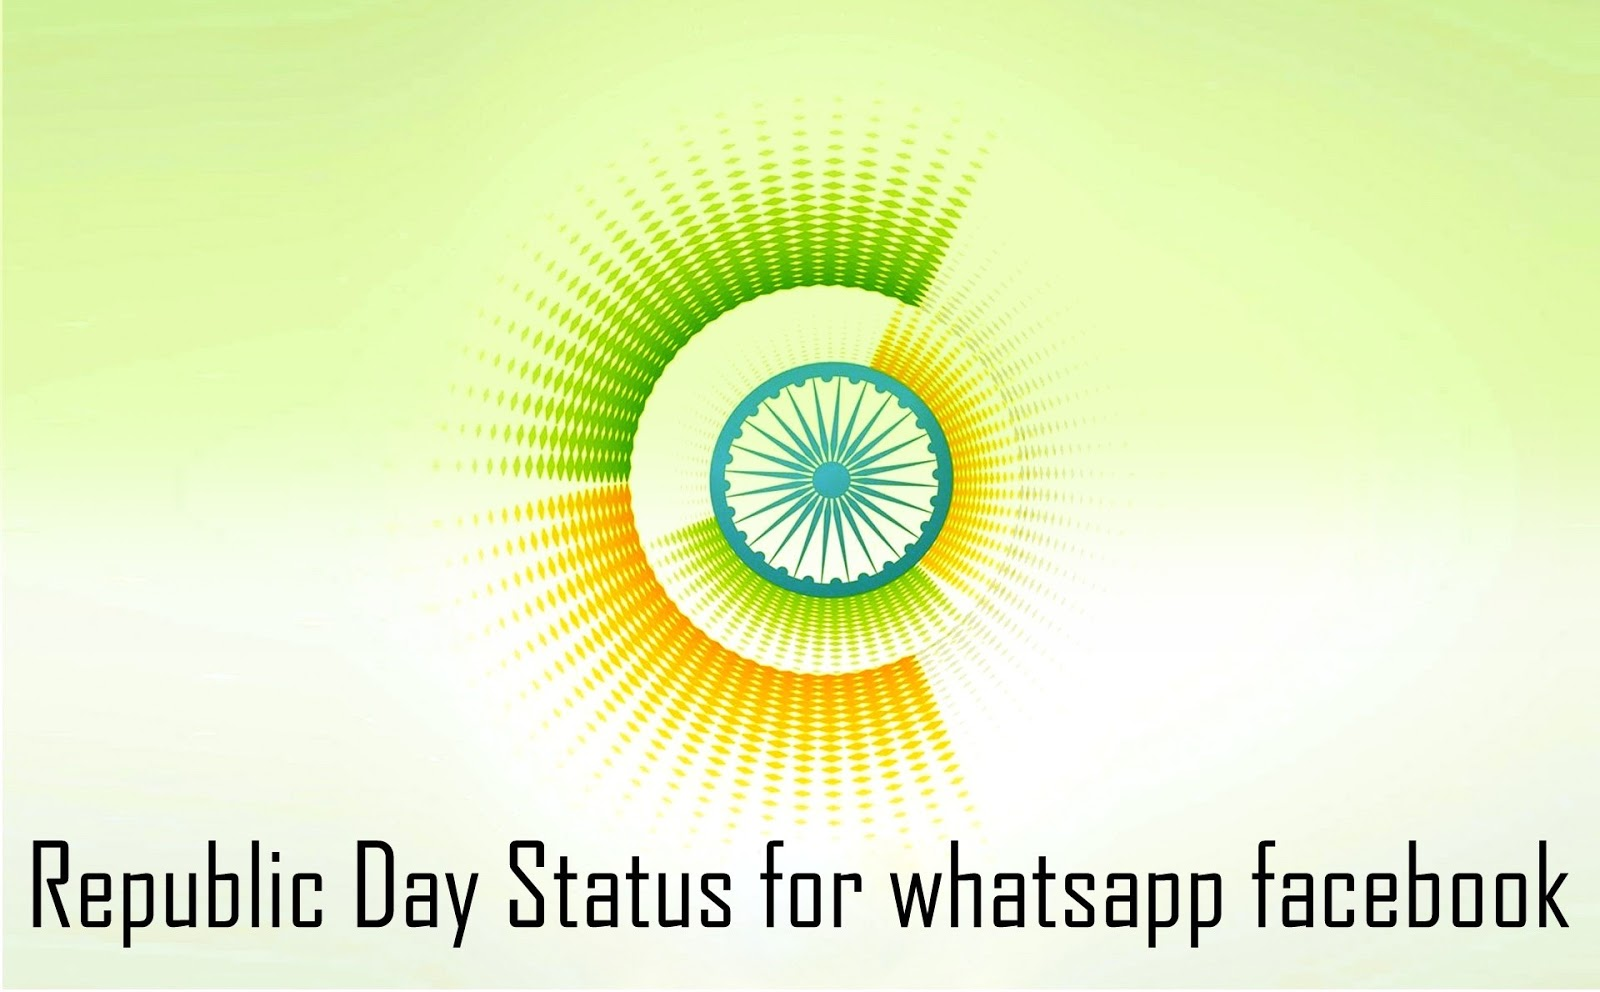 Republic Day Messages Sms Quotes For Facebook Whatsapp Status